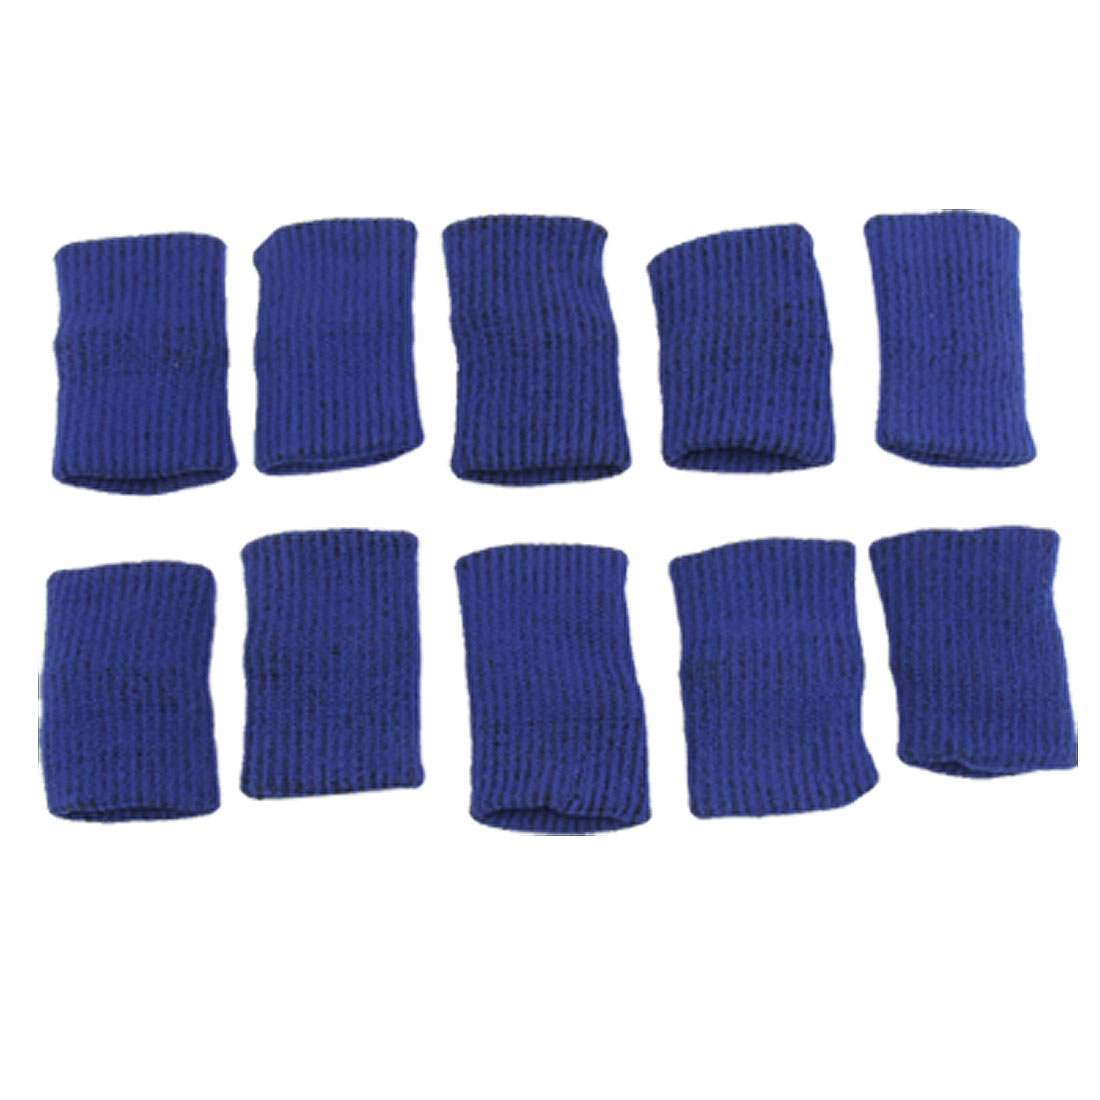 Unique Bargains 10Pcs Blue Sports Stretchy Soft Finger Sleeves Protector Support for Basketball